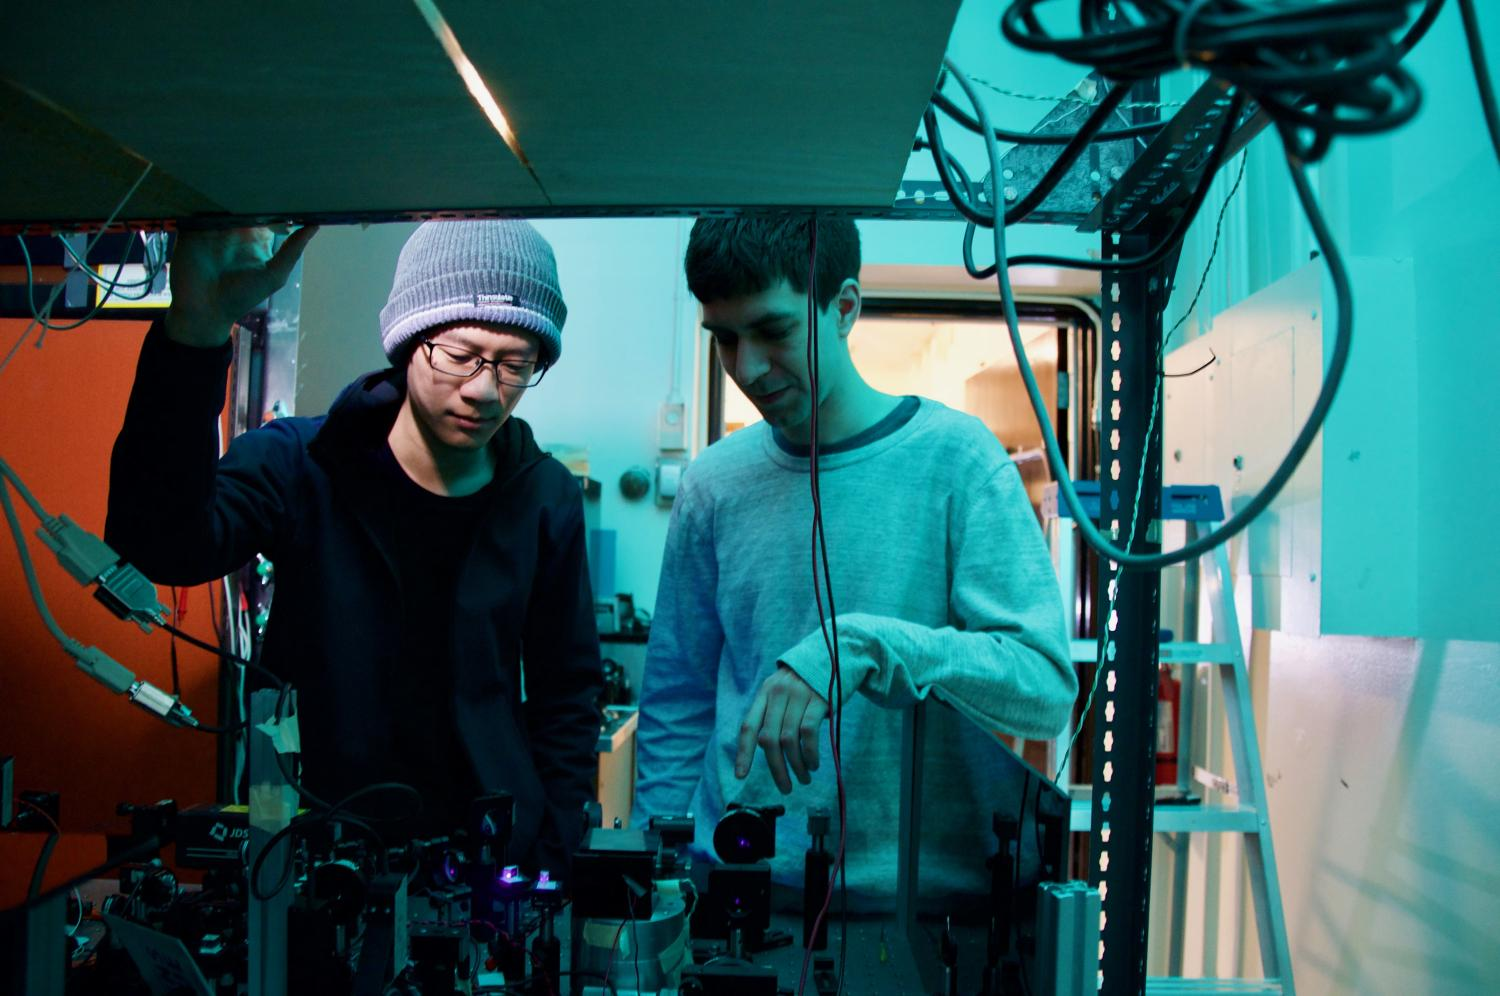 Physicists harness neglected properties of light